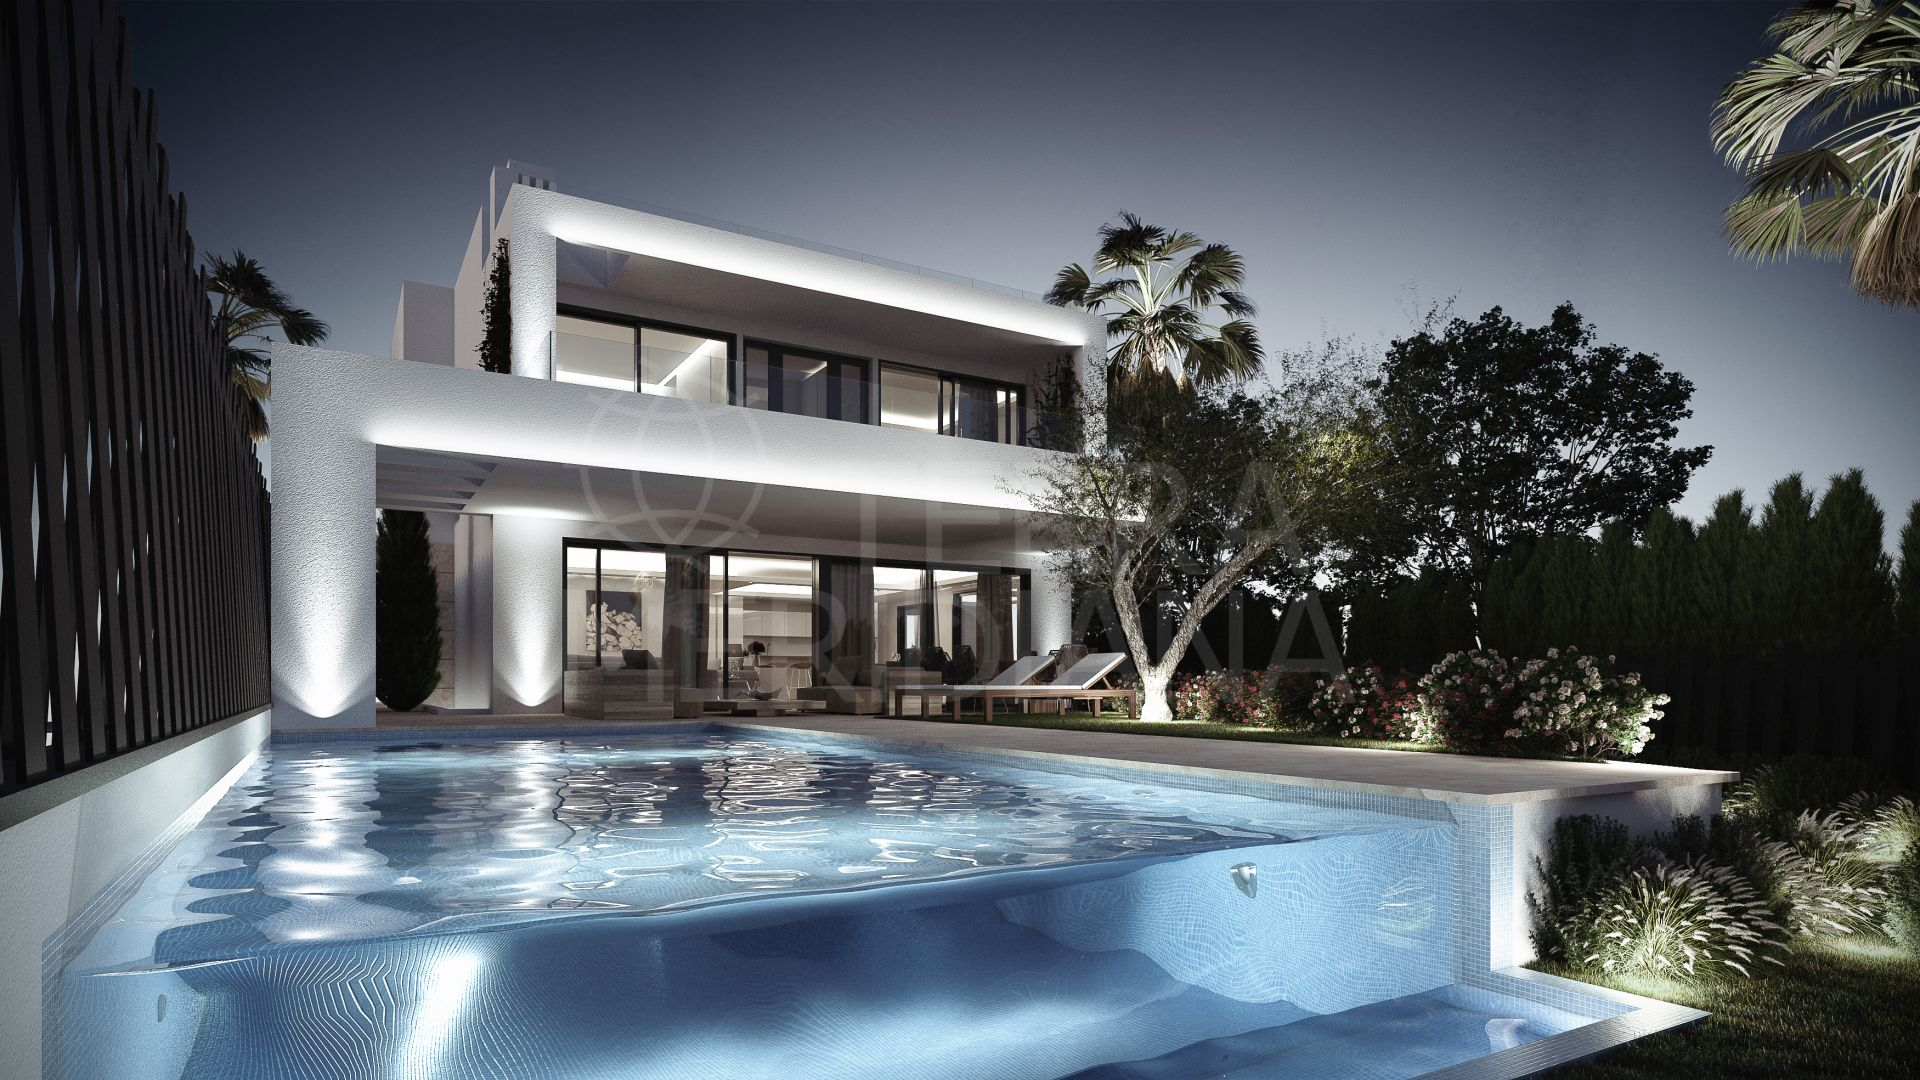 Altos de Puente Romano , Marbella Golden Mile - New gated complex of 5-6 bedroom contemporary luxury villas in the heart of Marbella´s Golden Mile